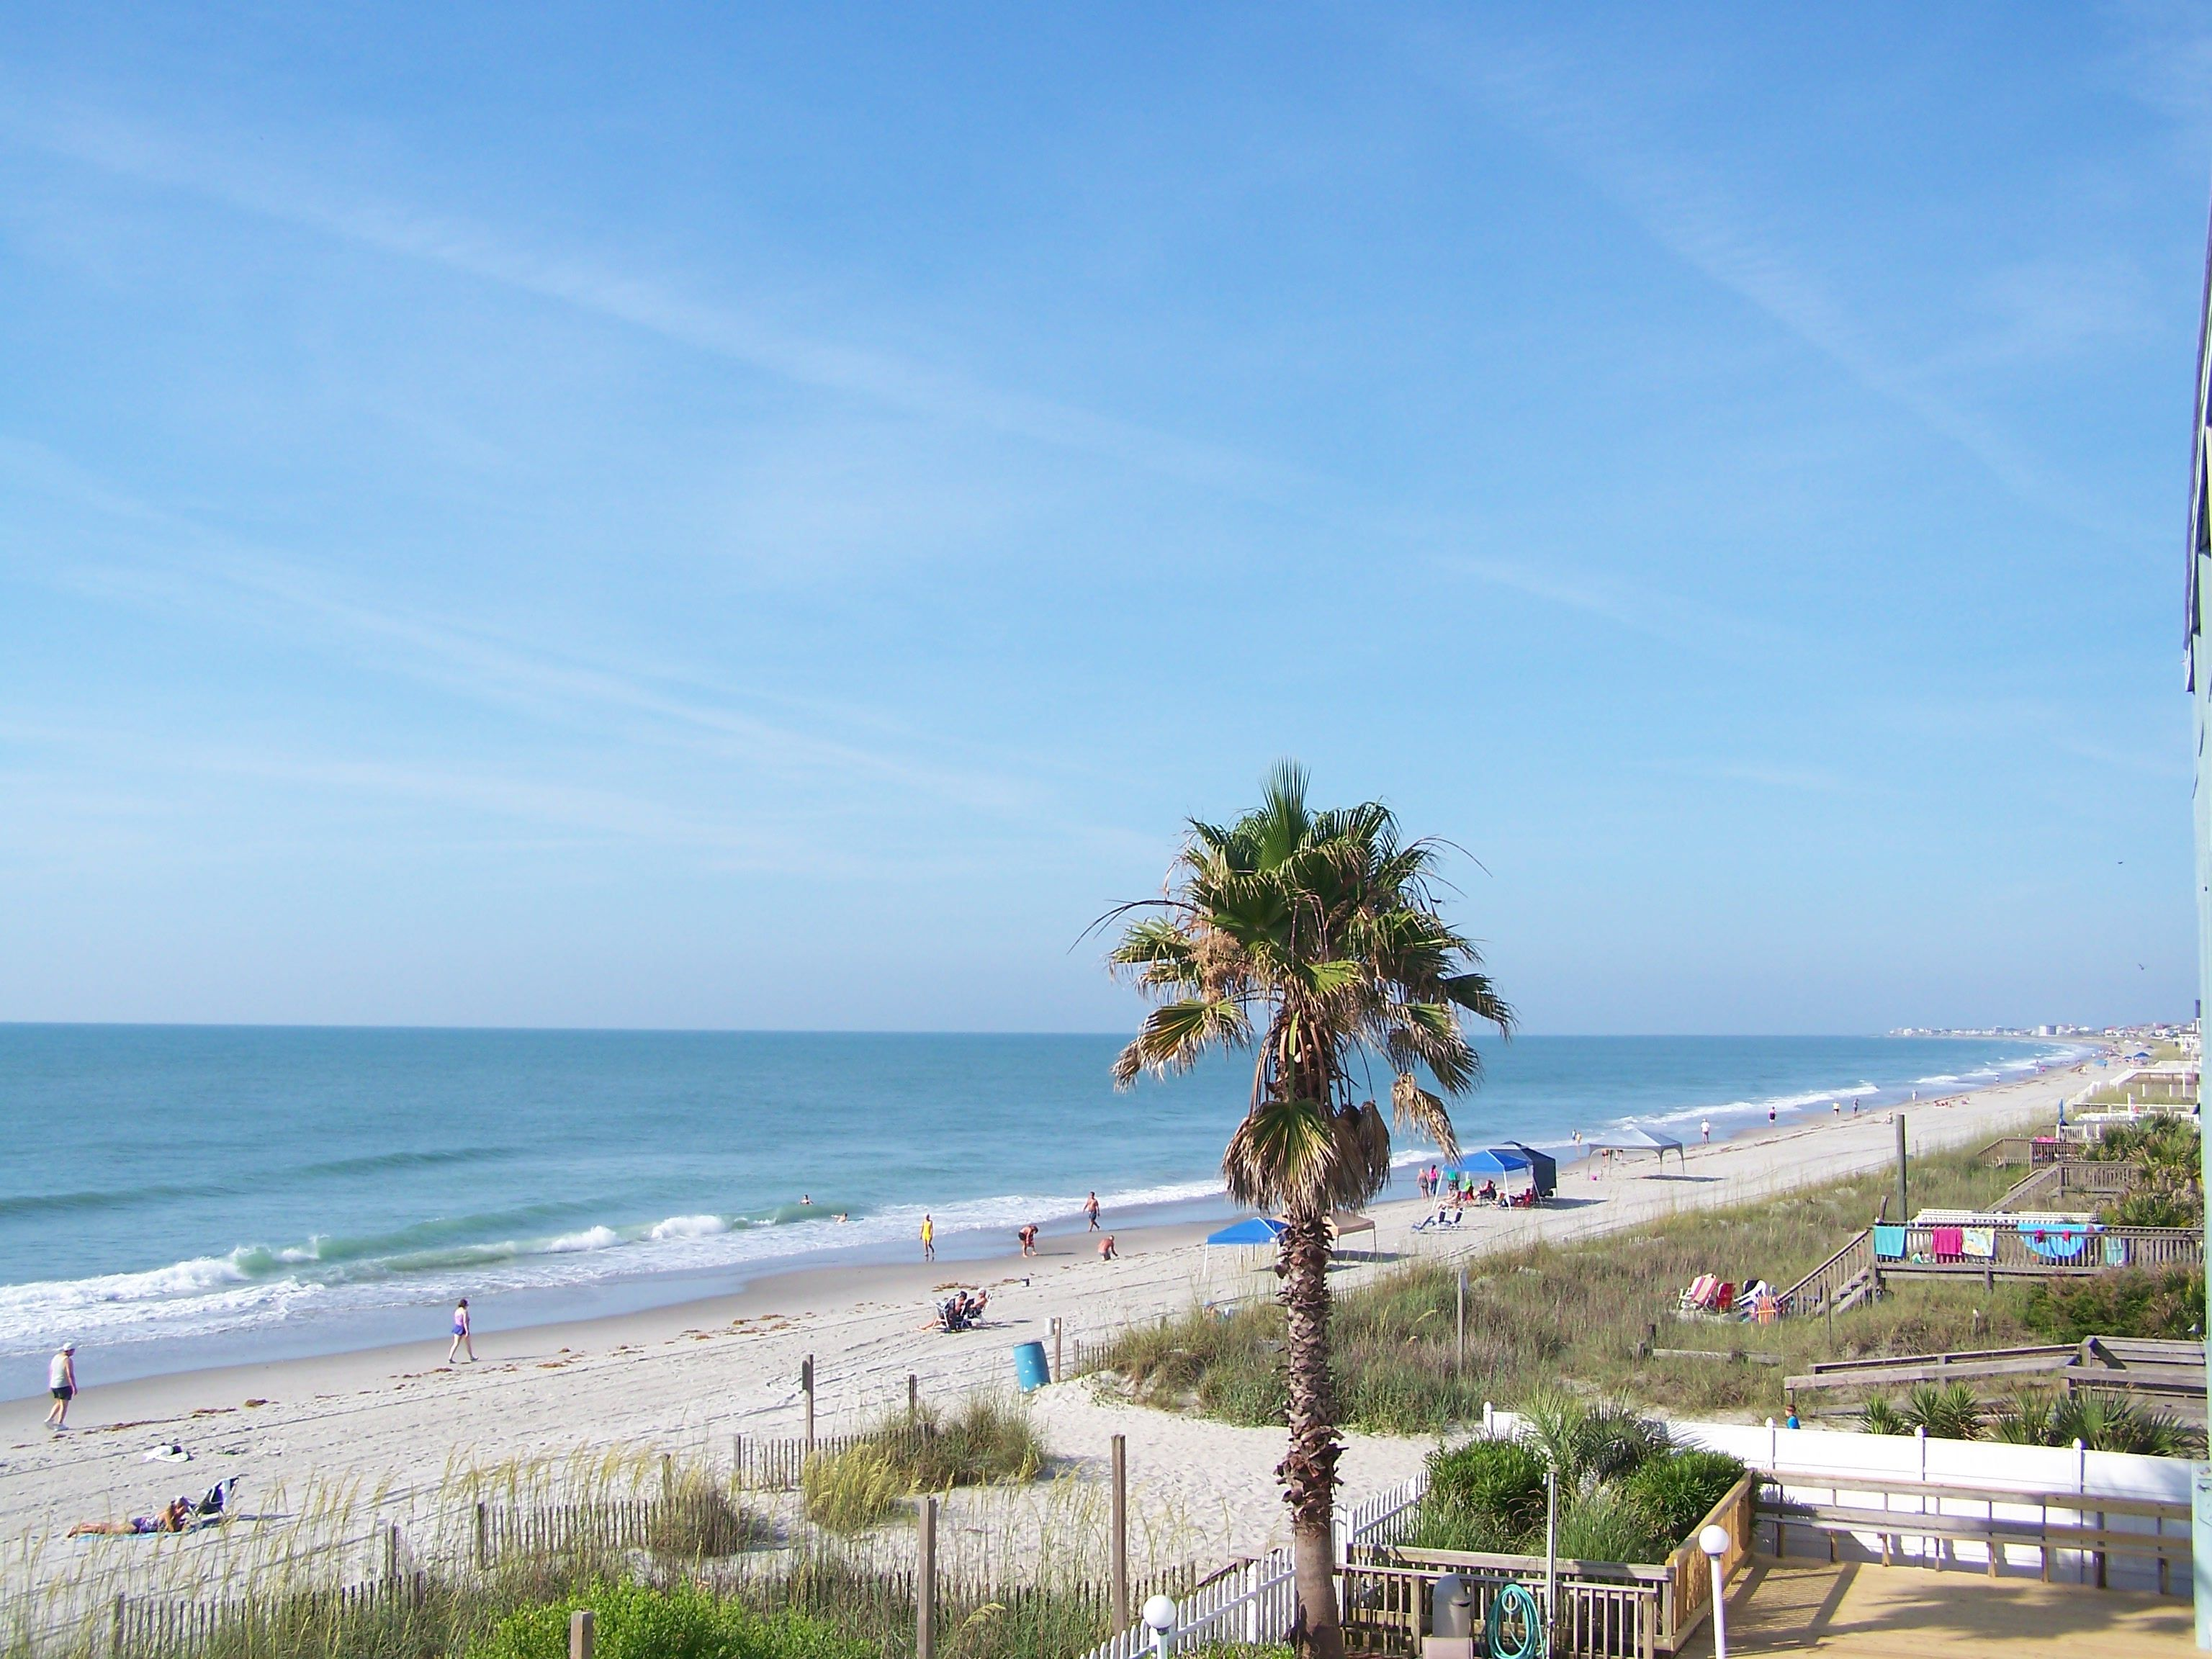 garden city beach sc places to go things to do